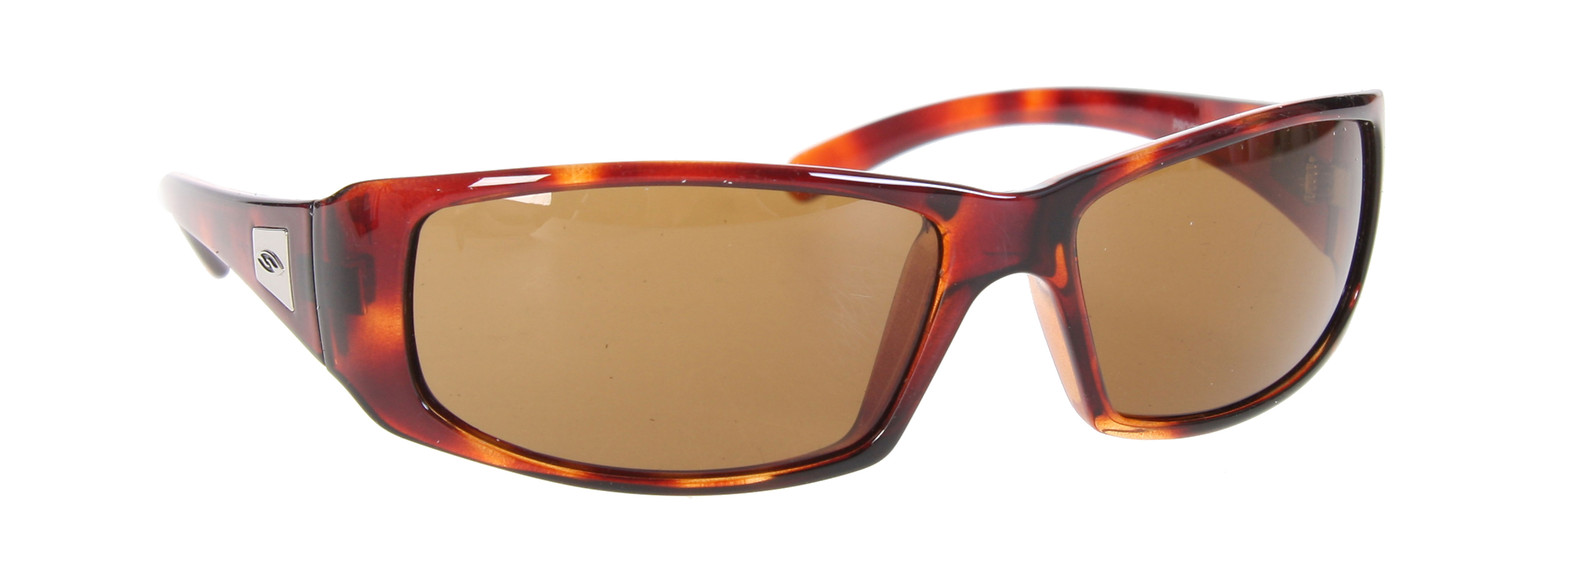 Smith Proof Sunglasses Tortoise/Brown Lens  smith-proof-sngls-tortbrwn-09.jpg